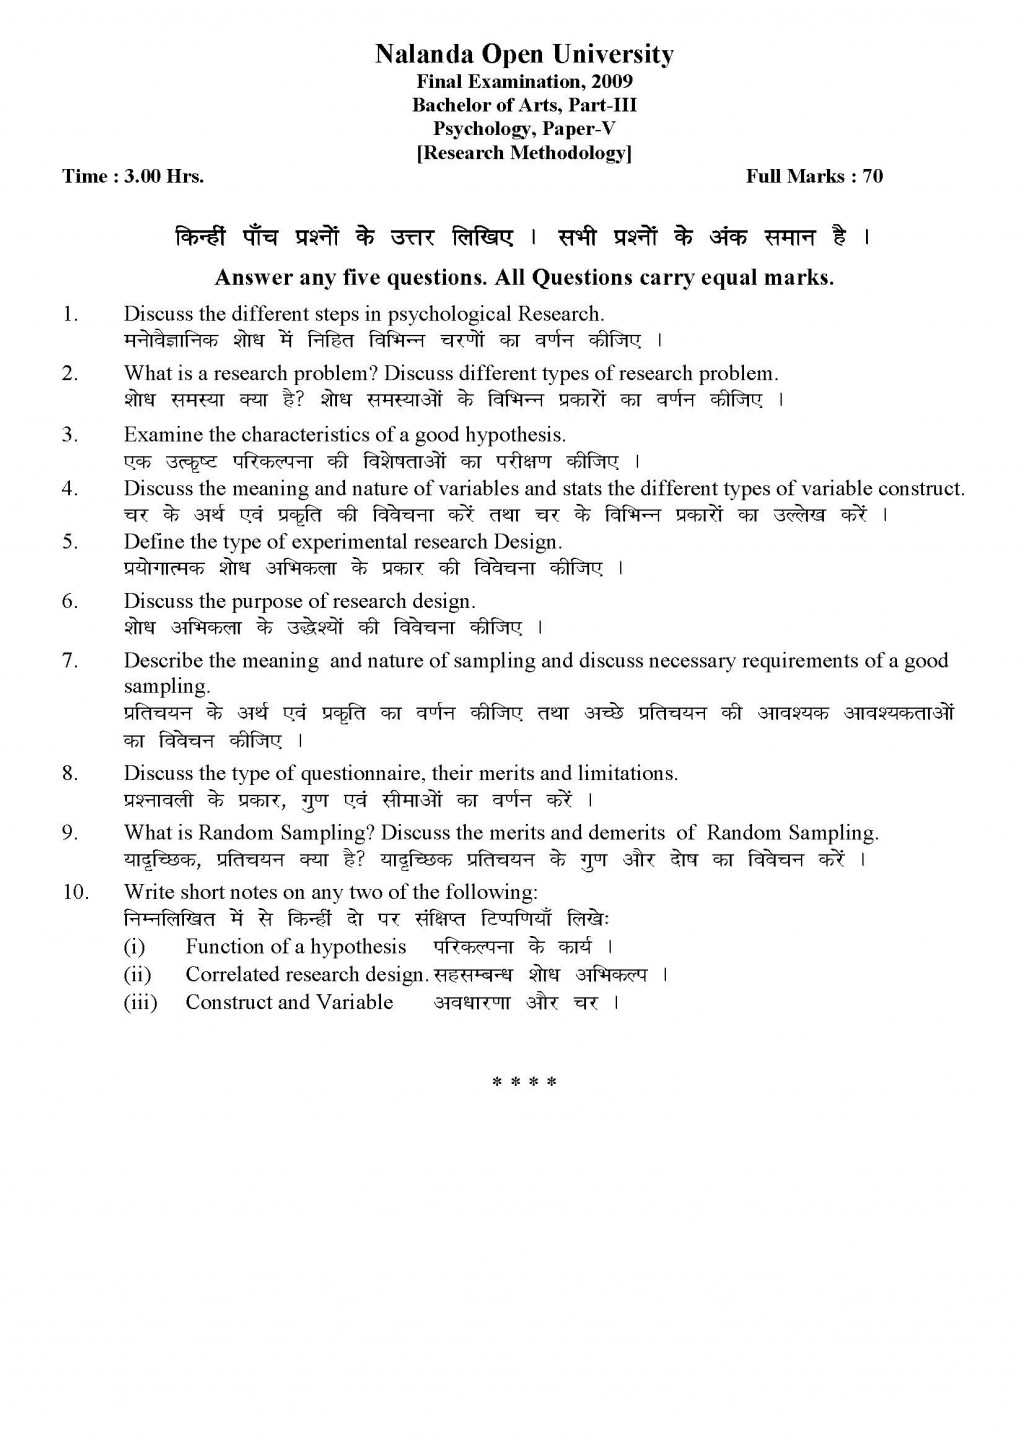 002 Research Paper Methodology Pdf Psychology Part Iii Dreaded Question For Phd Example Sample Large